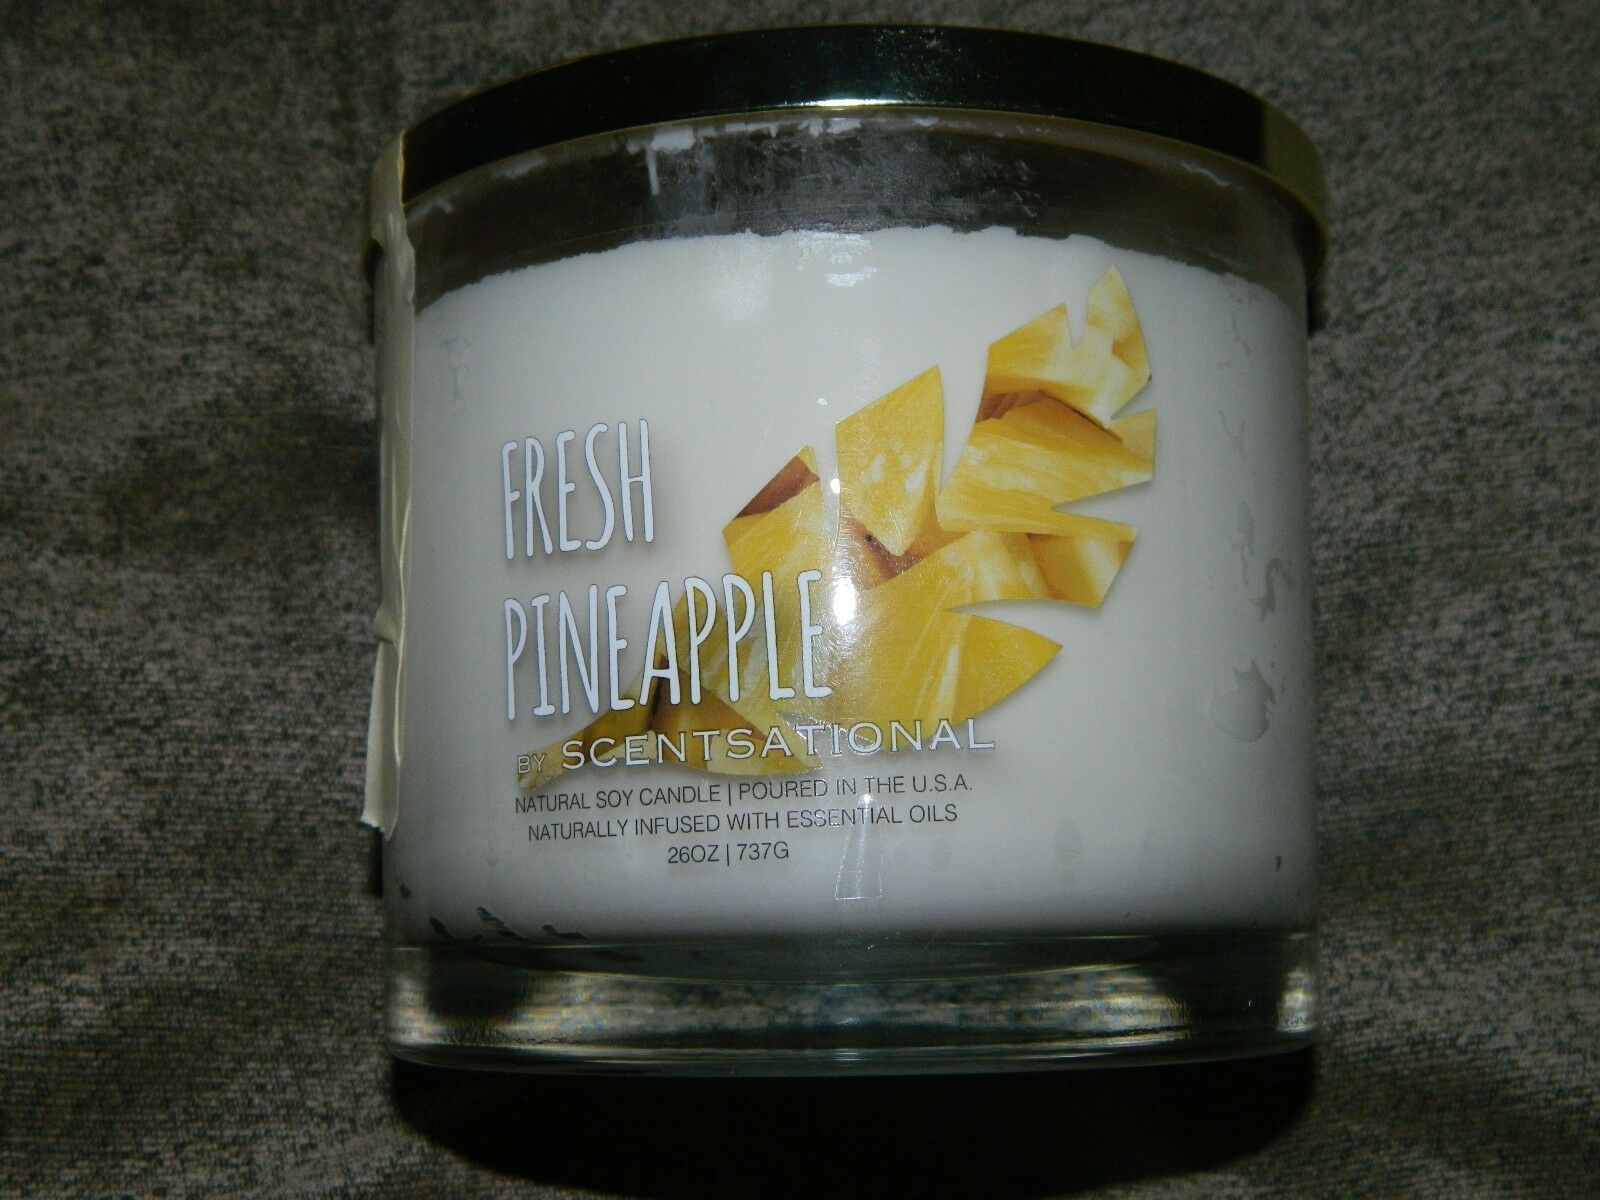 Scentsational Fresh Pineapple  Natural Soy Scented Candle 26 oz.